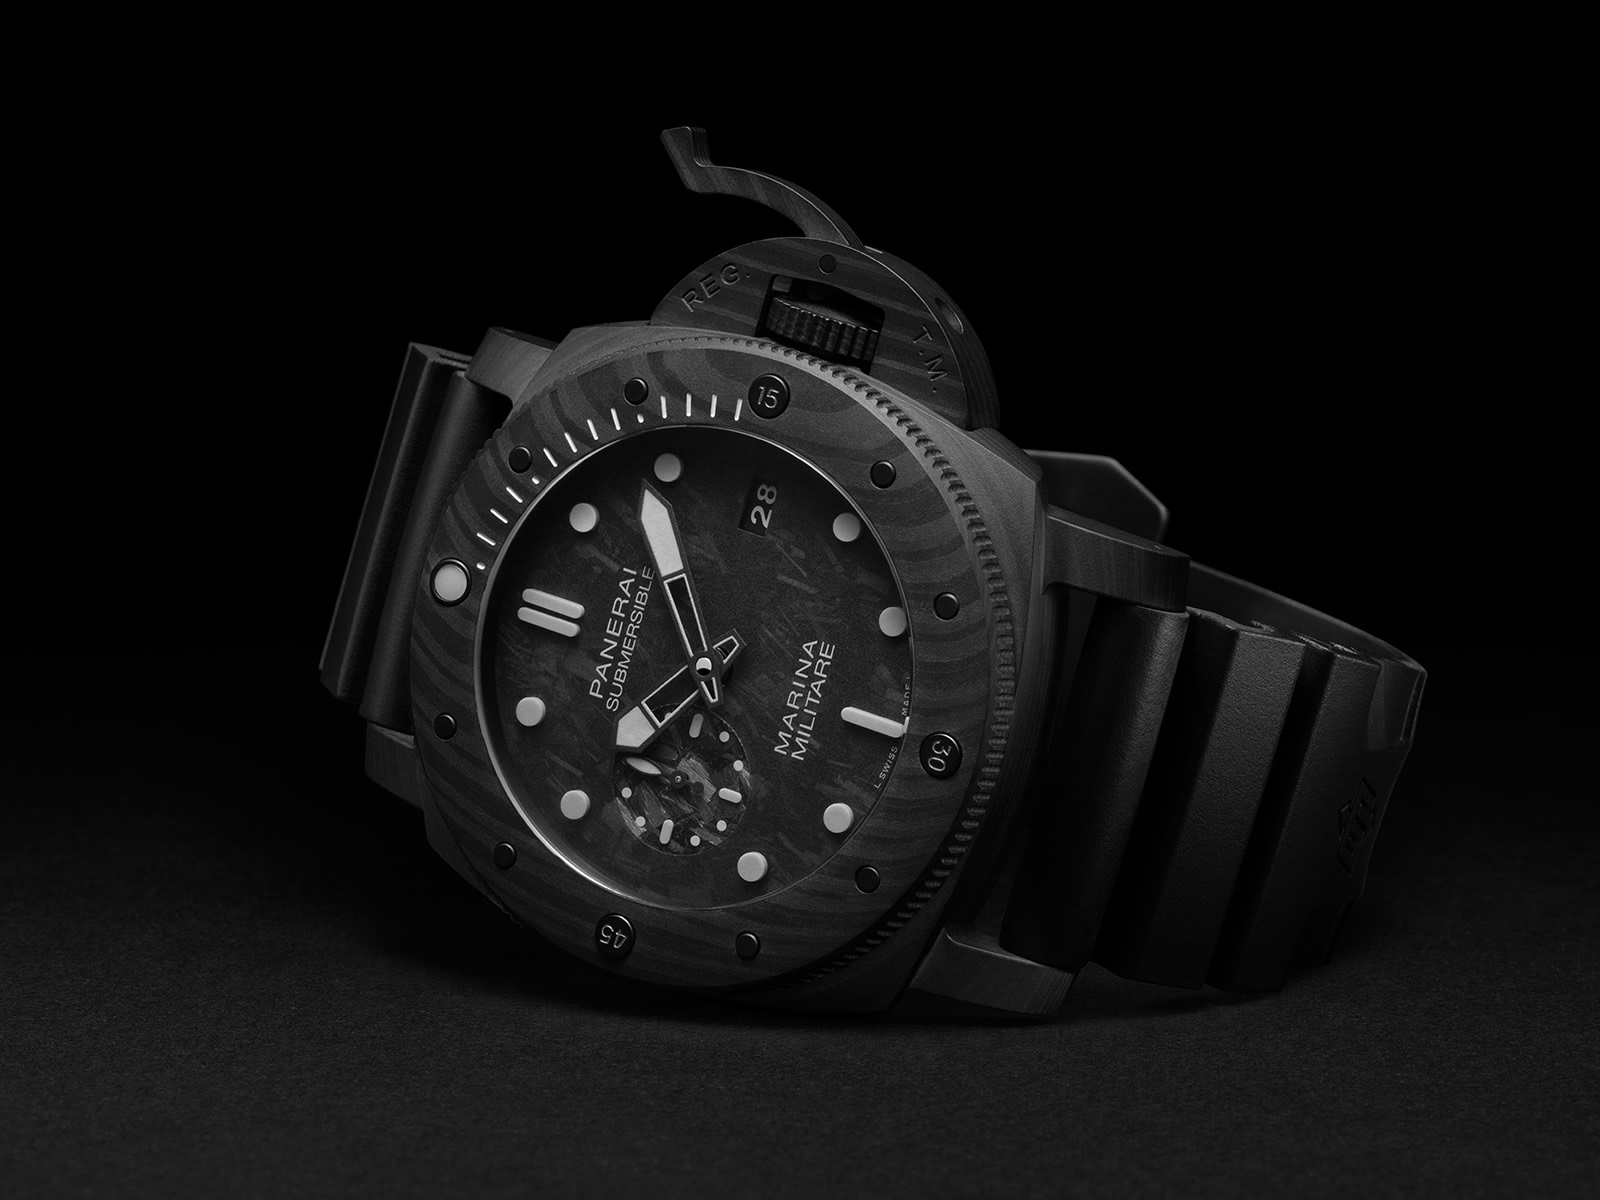 pam00979-officine-panerai-submersible-marina-militare-carbotech-1-.jpg